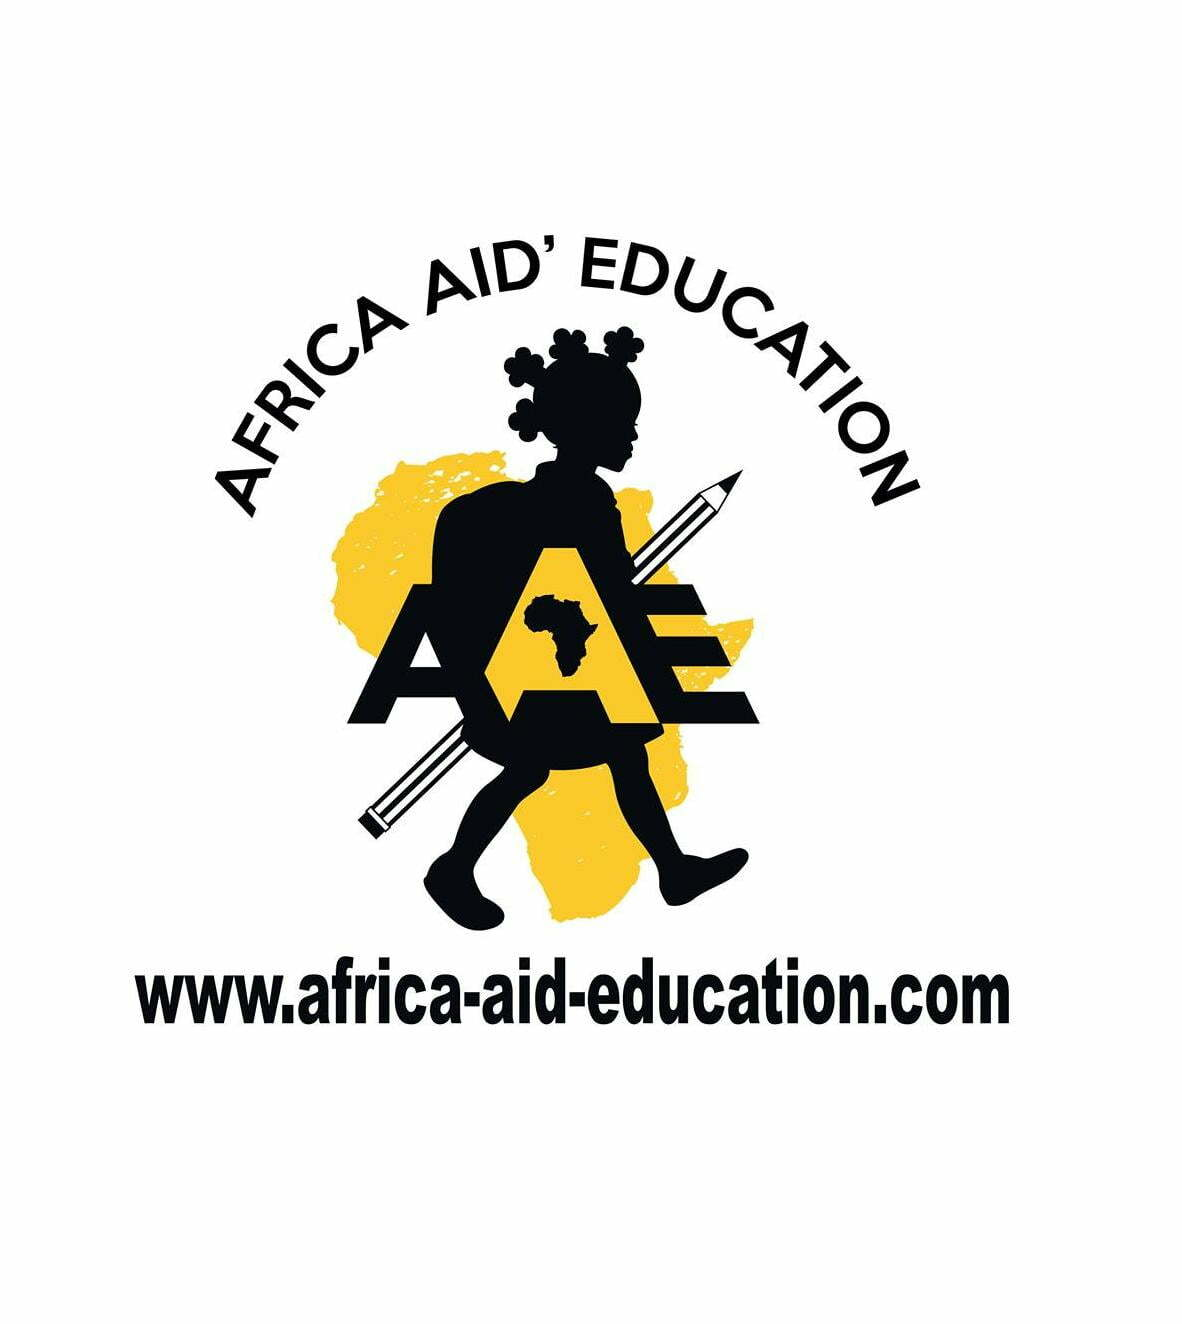 Africa Aid' Education